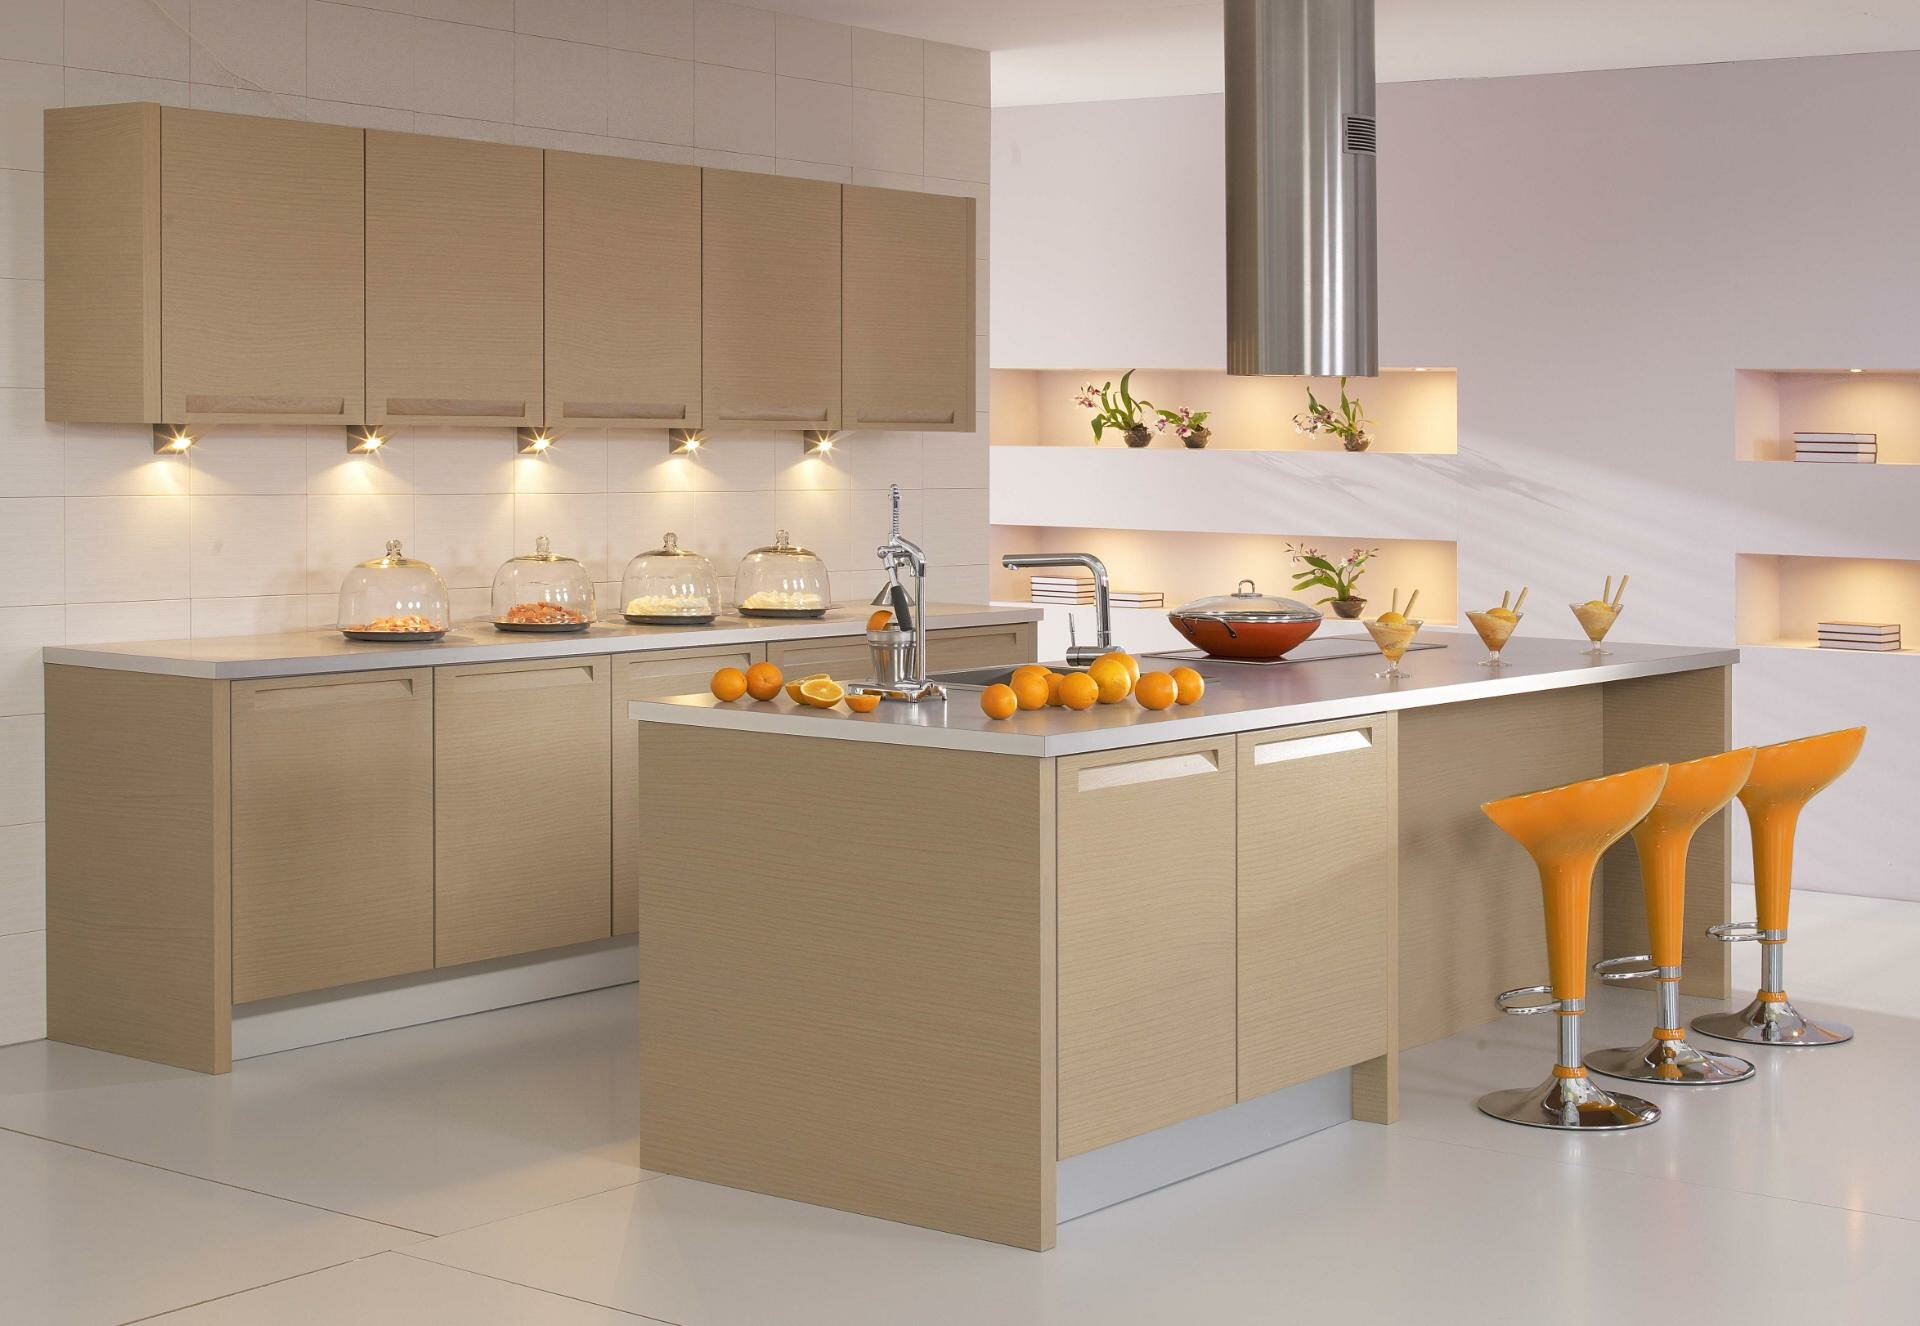 15 great kitchen cabinets that will inspire you for Design your kitchen